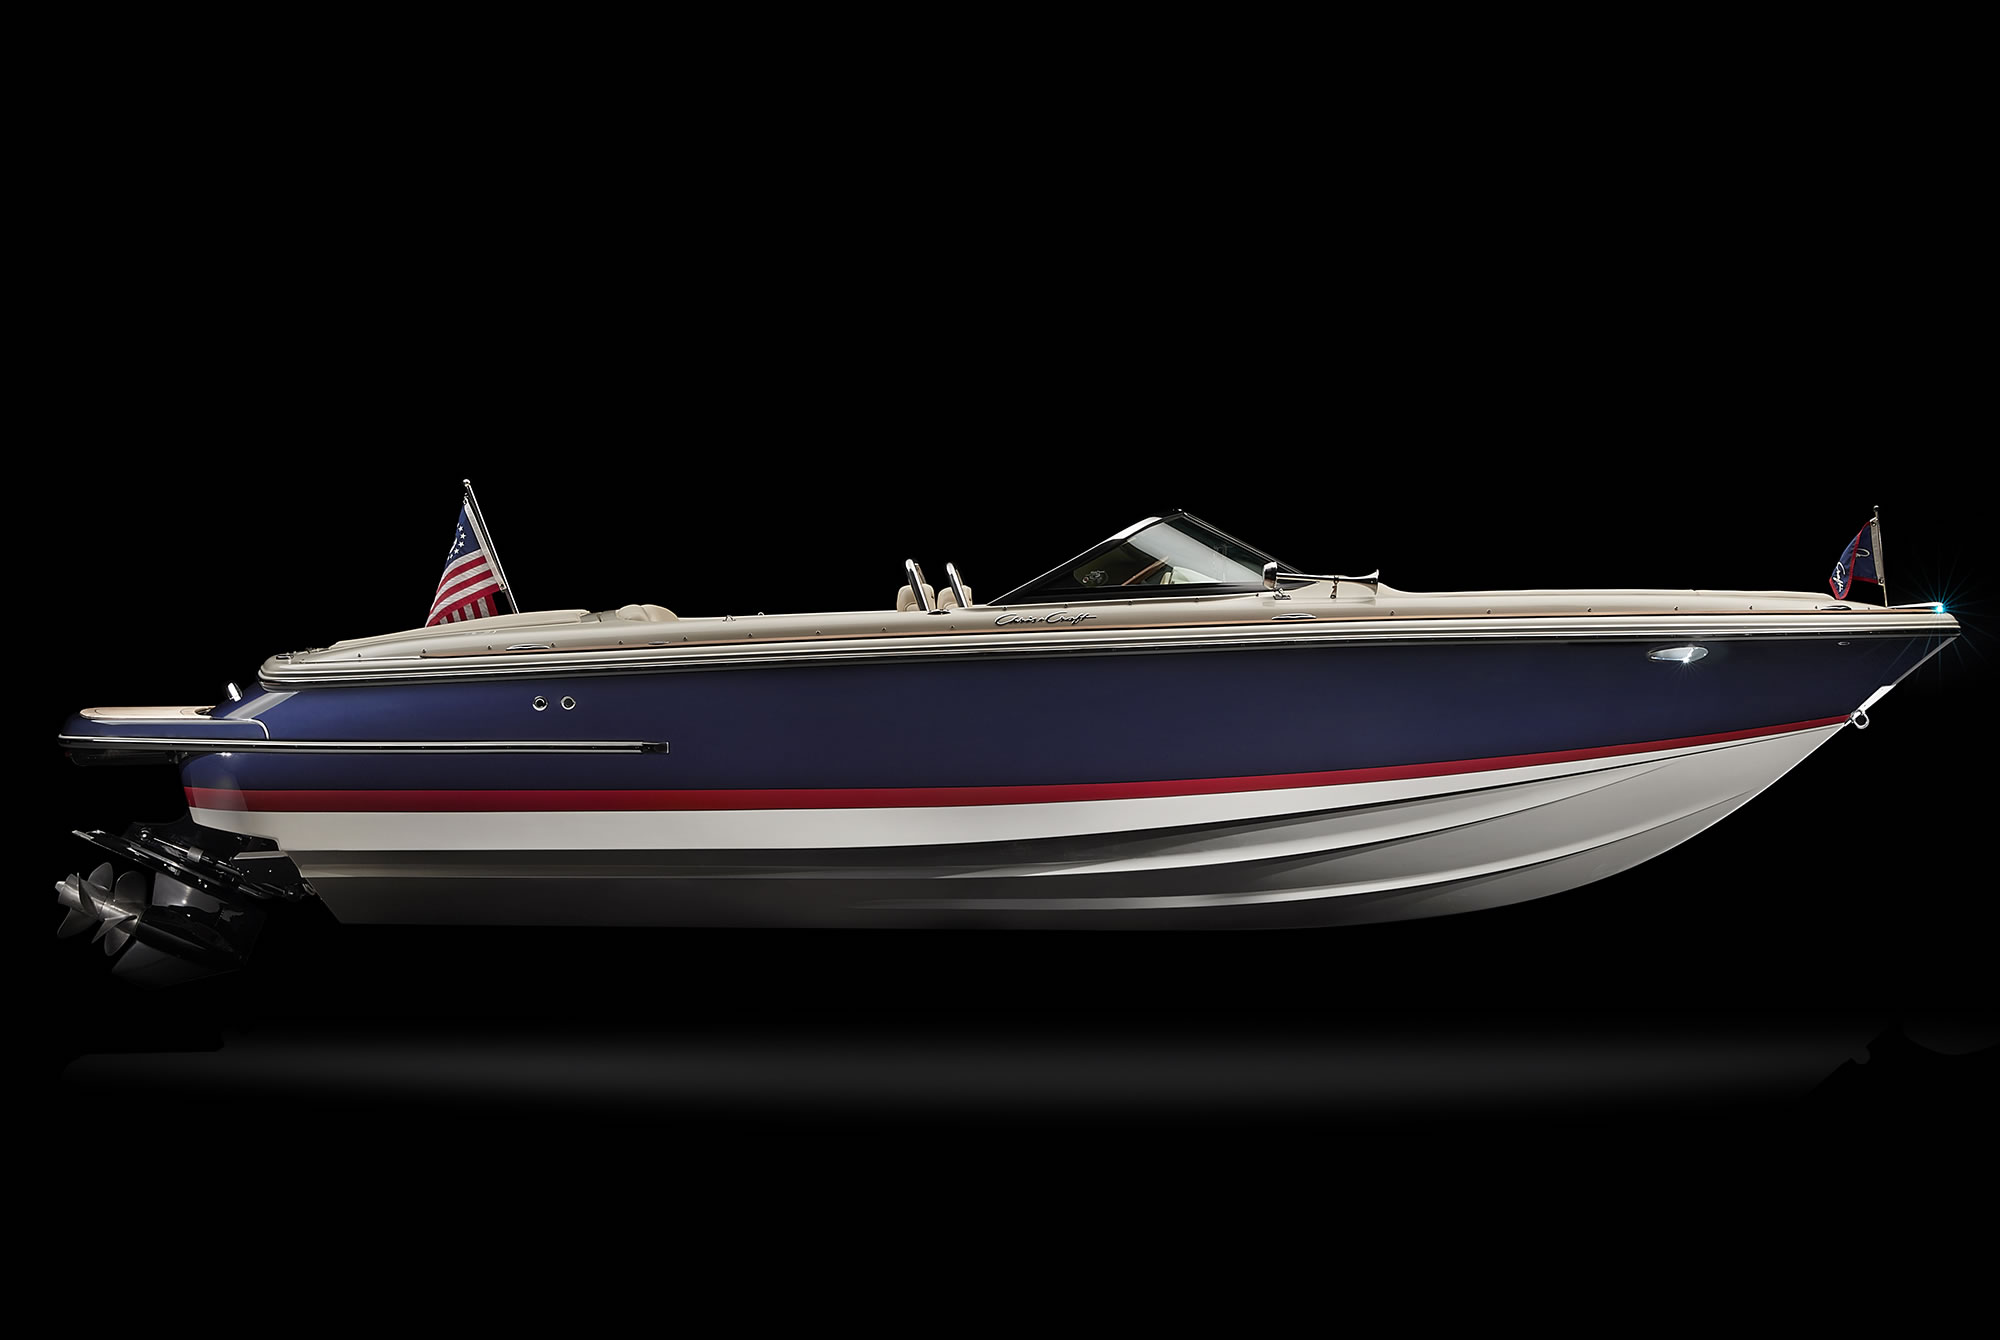 chris craft model boat new boat brochures 2017 chris craft launch 22 3549